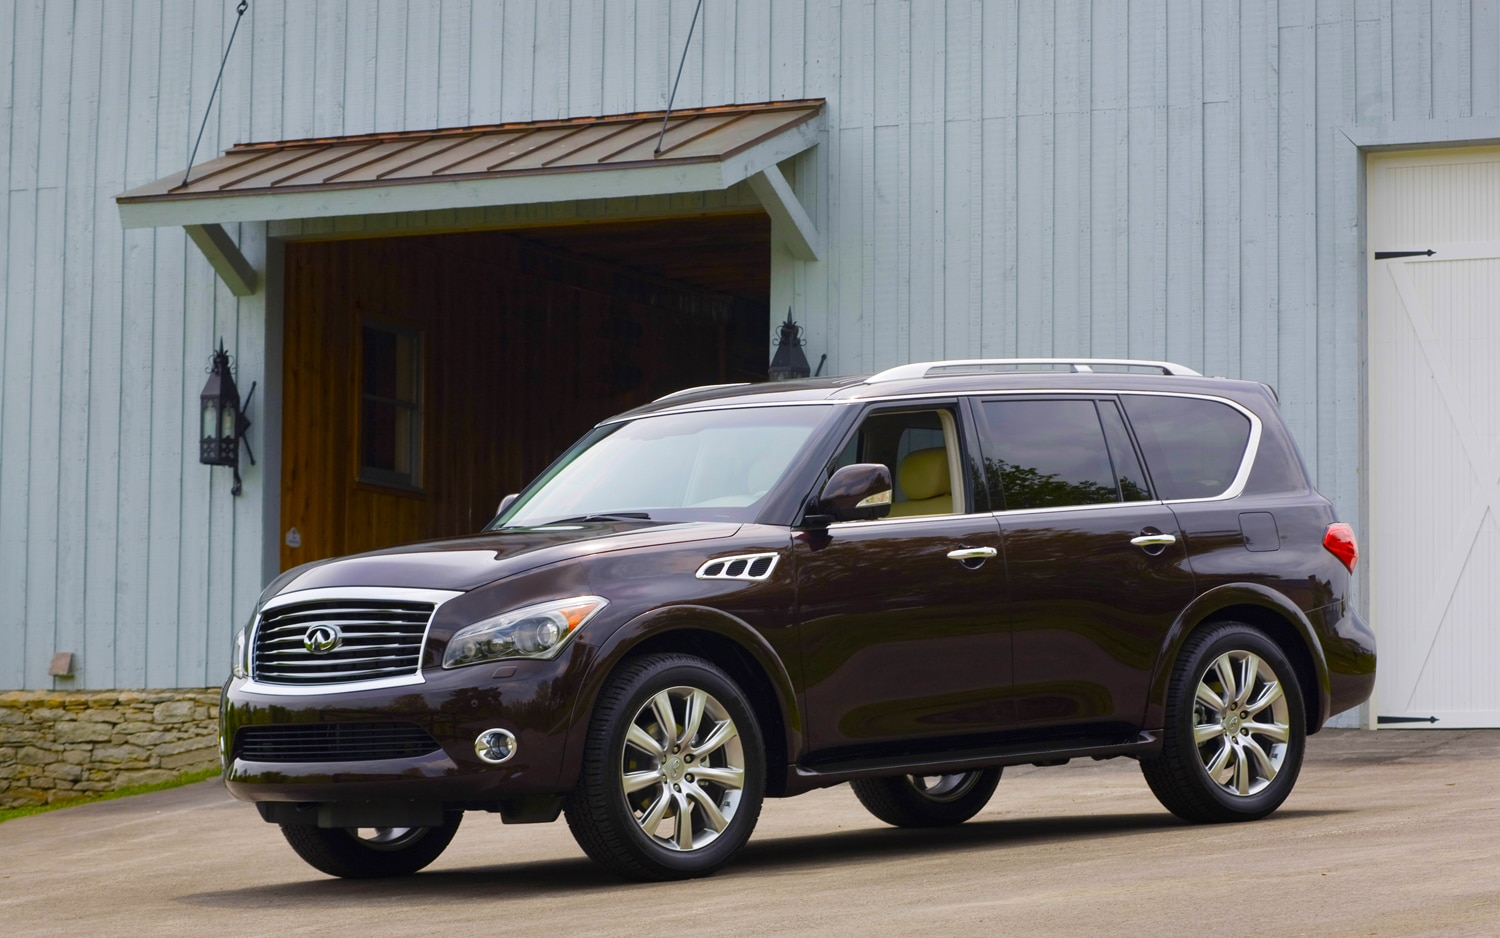 2012 Infiniti QX56 4WD Front Left Side View1